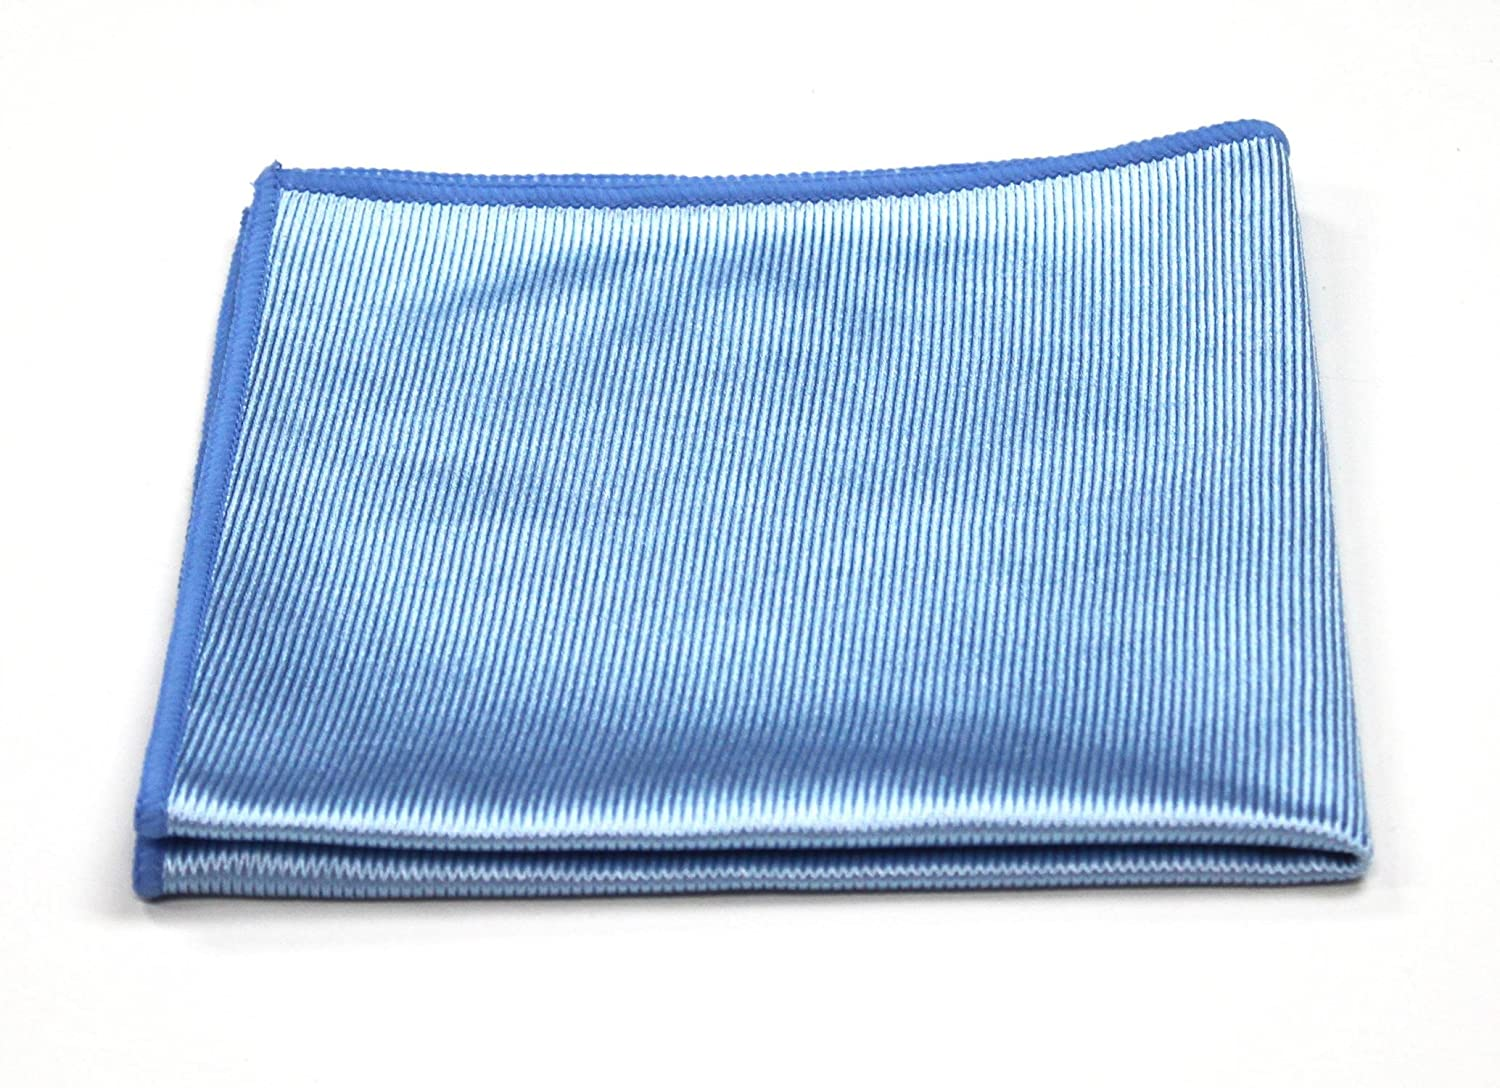 Pro Clean Basics A73040 Microfiber Glass Cleaning Cloth 16 x 16